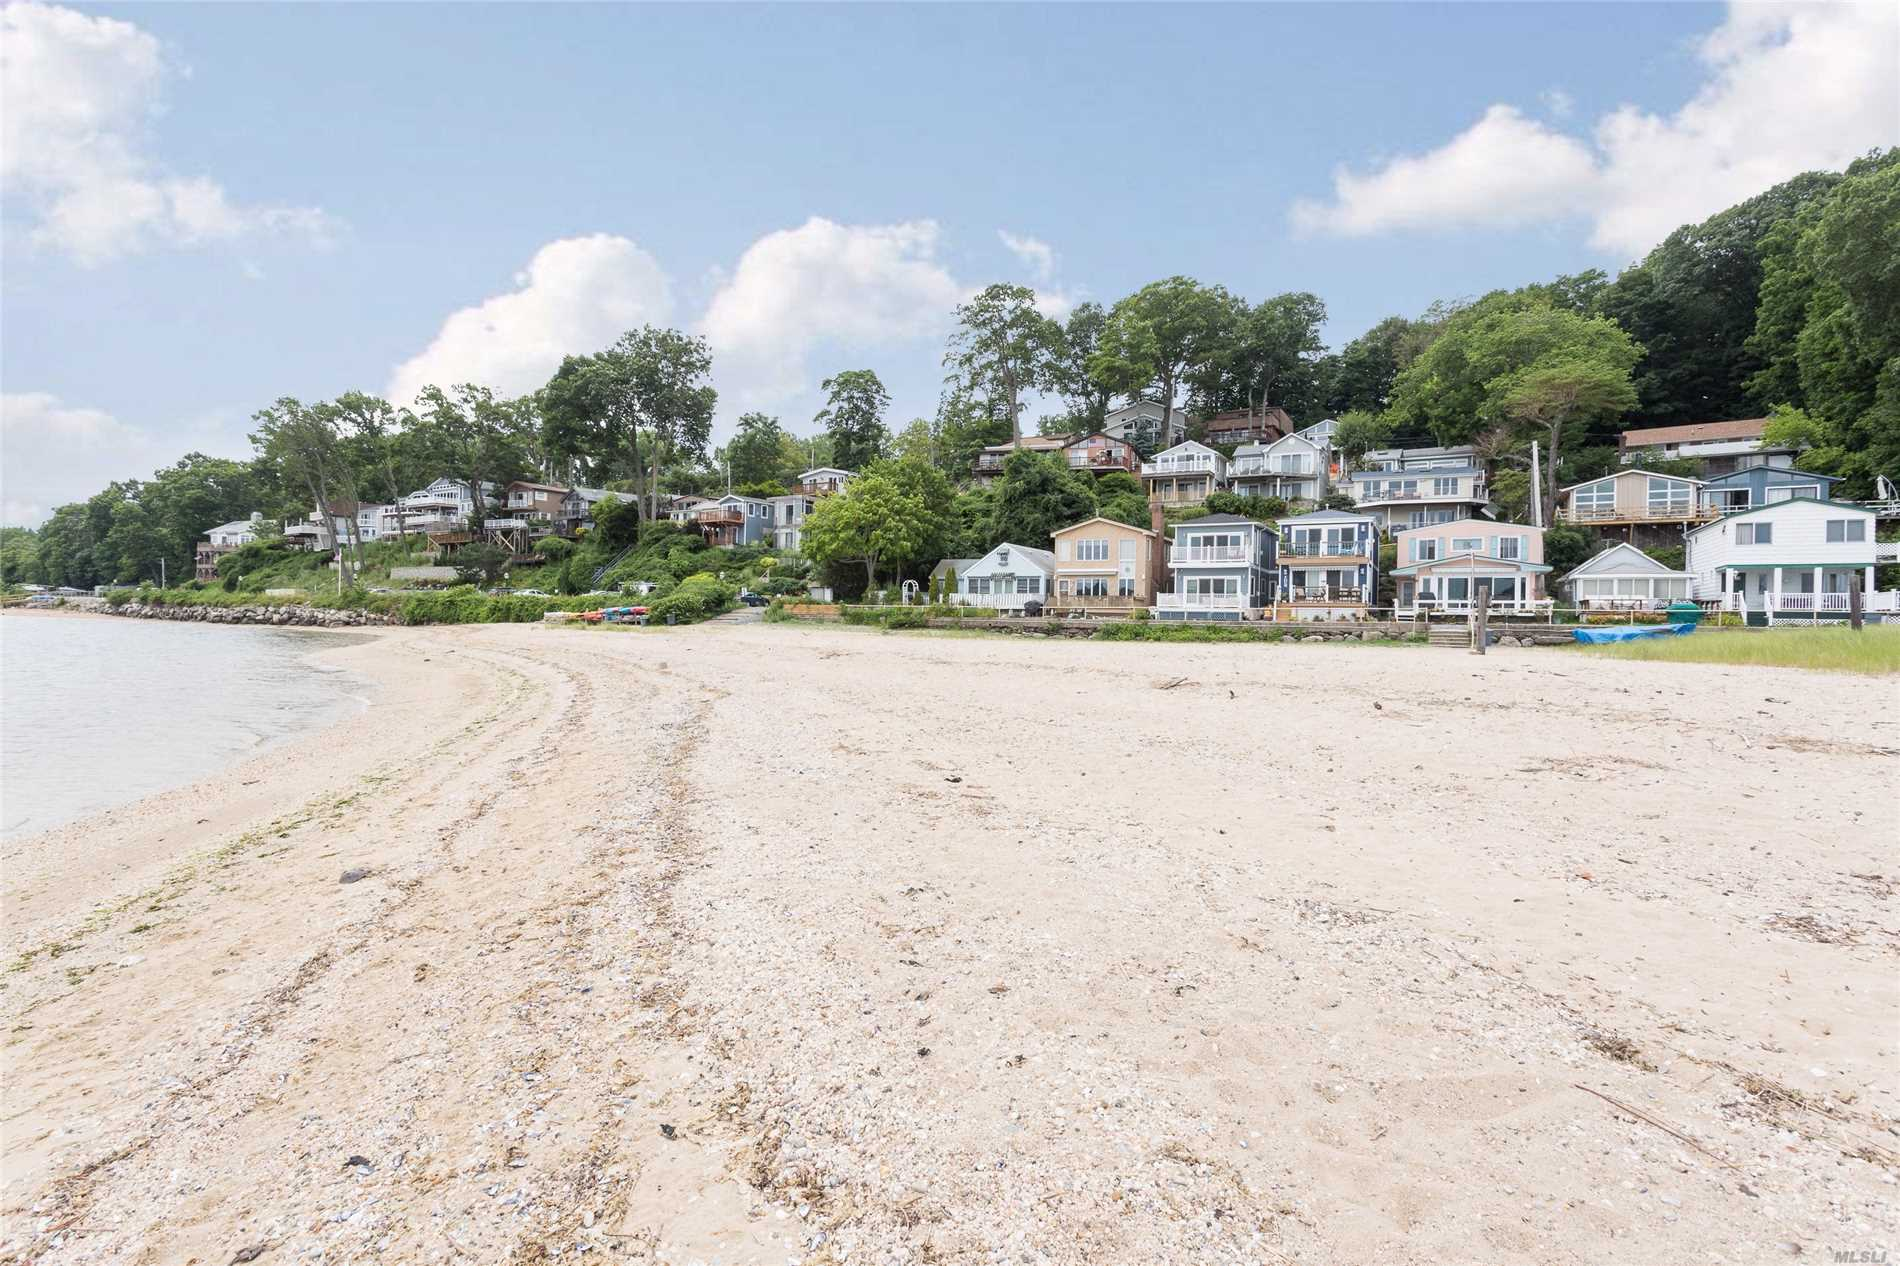 Gorgeous Water Front Community, With Low Taxes. Individual Cottage Which Can Be Increased To 1500Sqft Of Living Space, Comes With Beach And Mooring, And Dock Rights. There Is A Slip For Your Boat Available With Extra Fee. The Cottage Needs Work But Does Already Have Gas Heat And Fireplace.